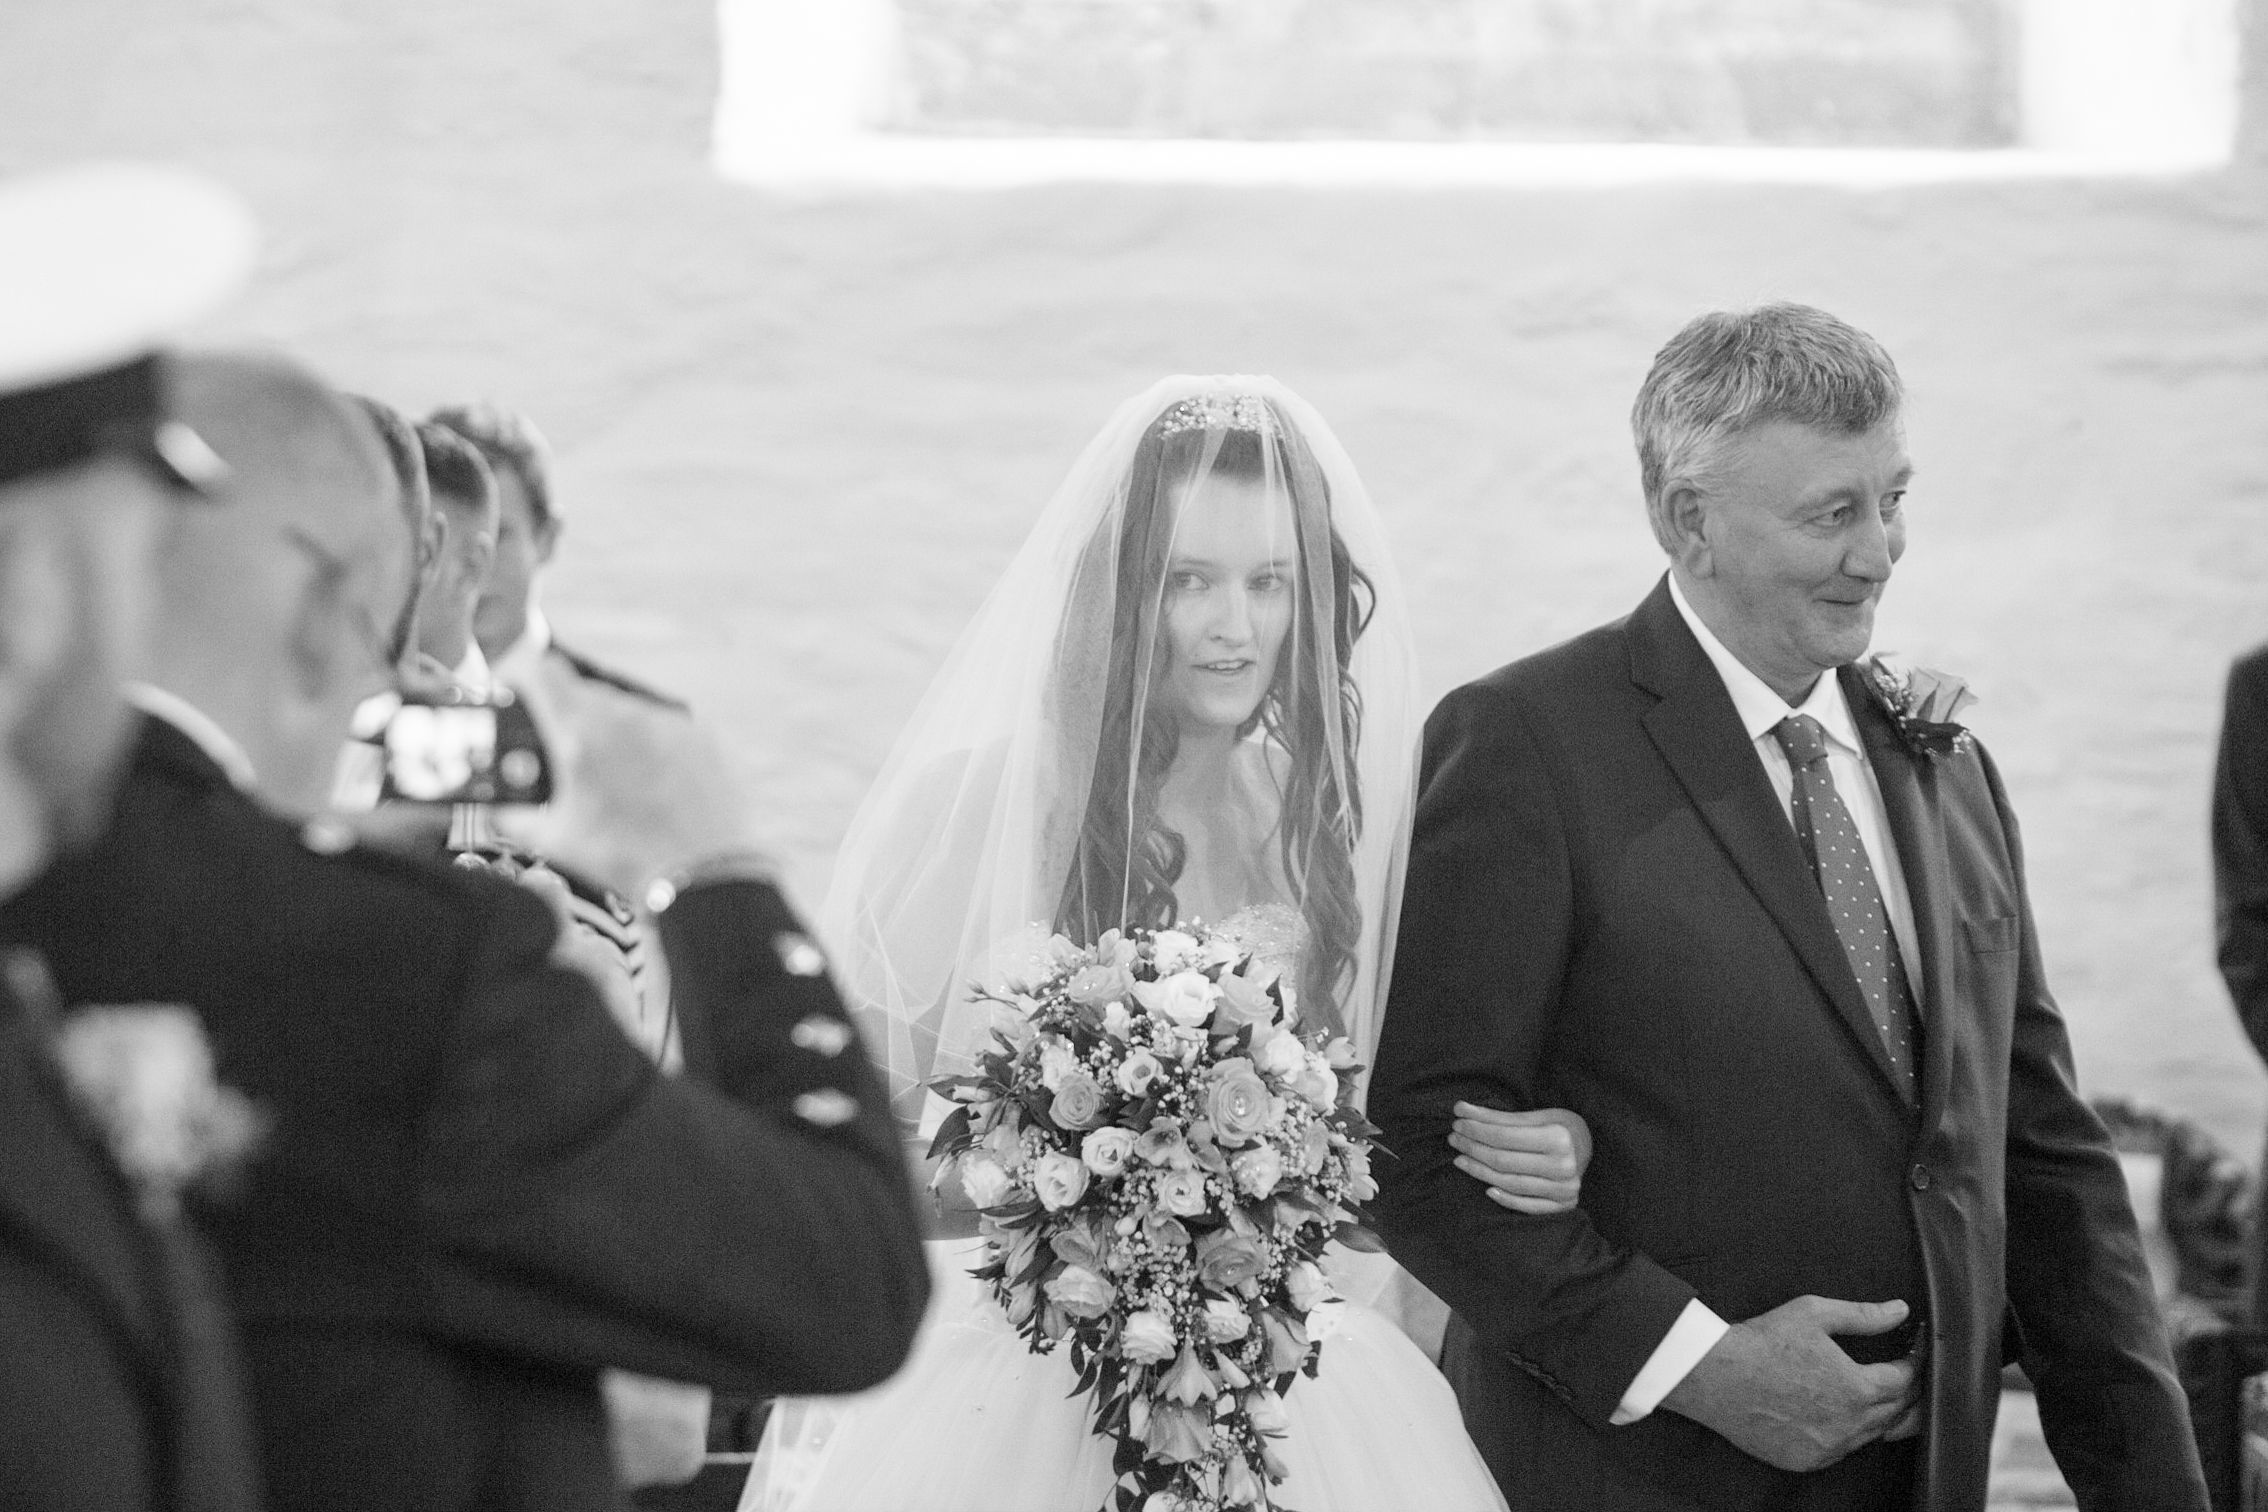 Gunwalloe church wedding cornwall navy wedding cornwall wedding photographer